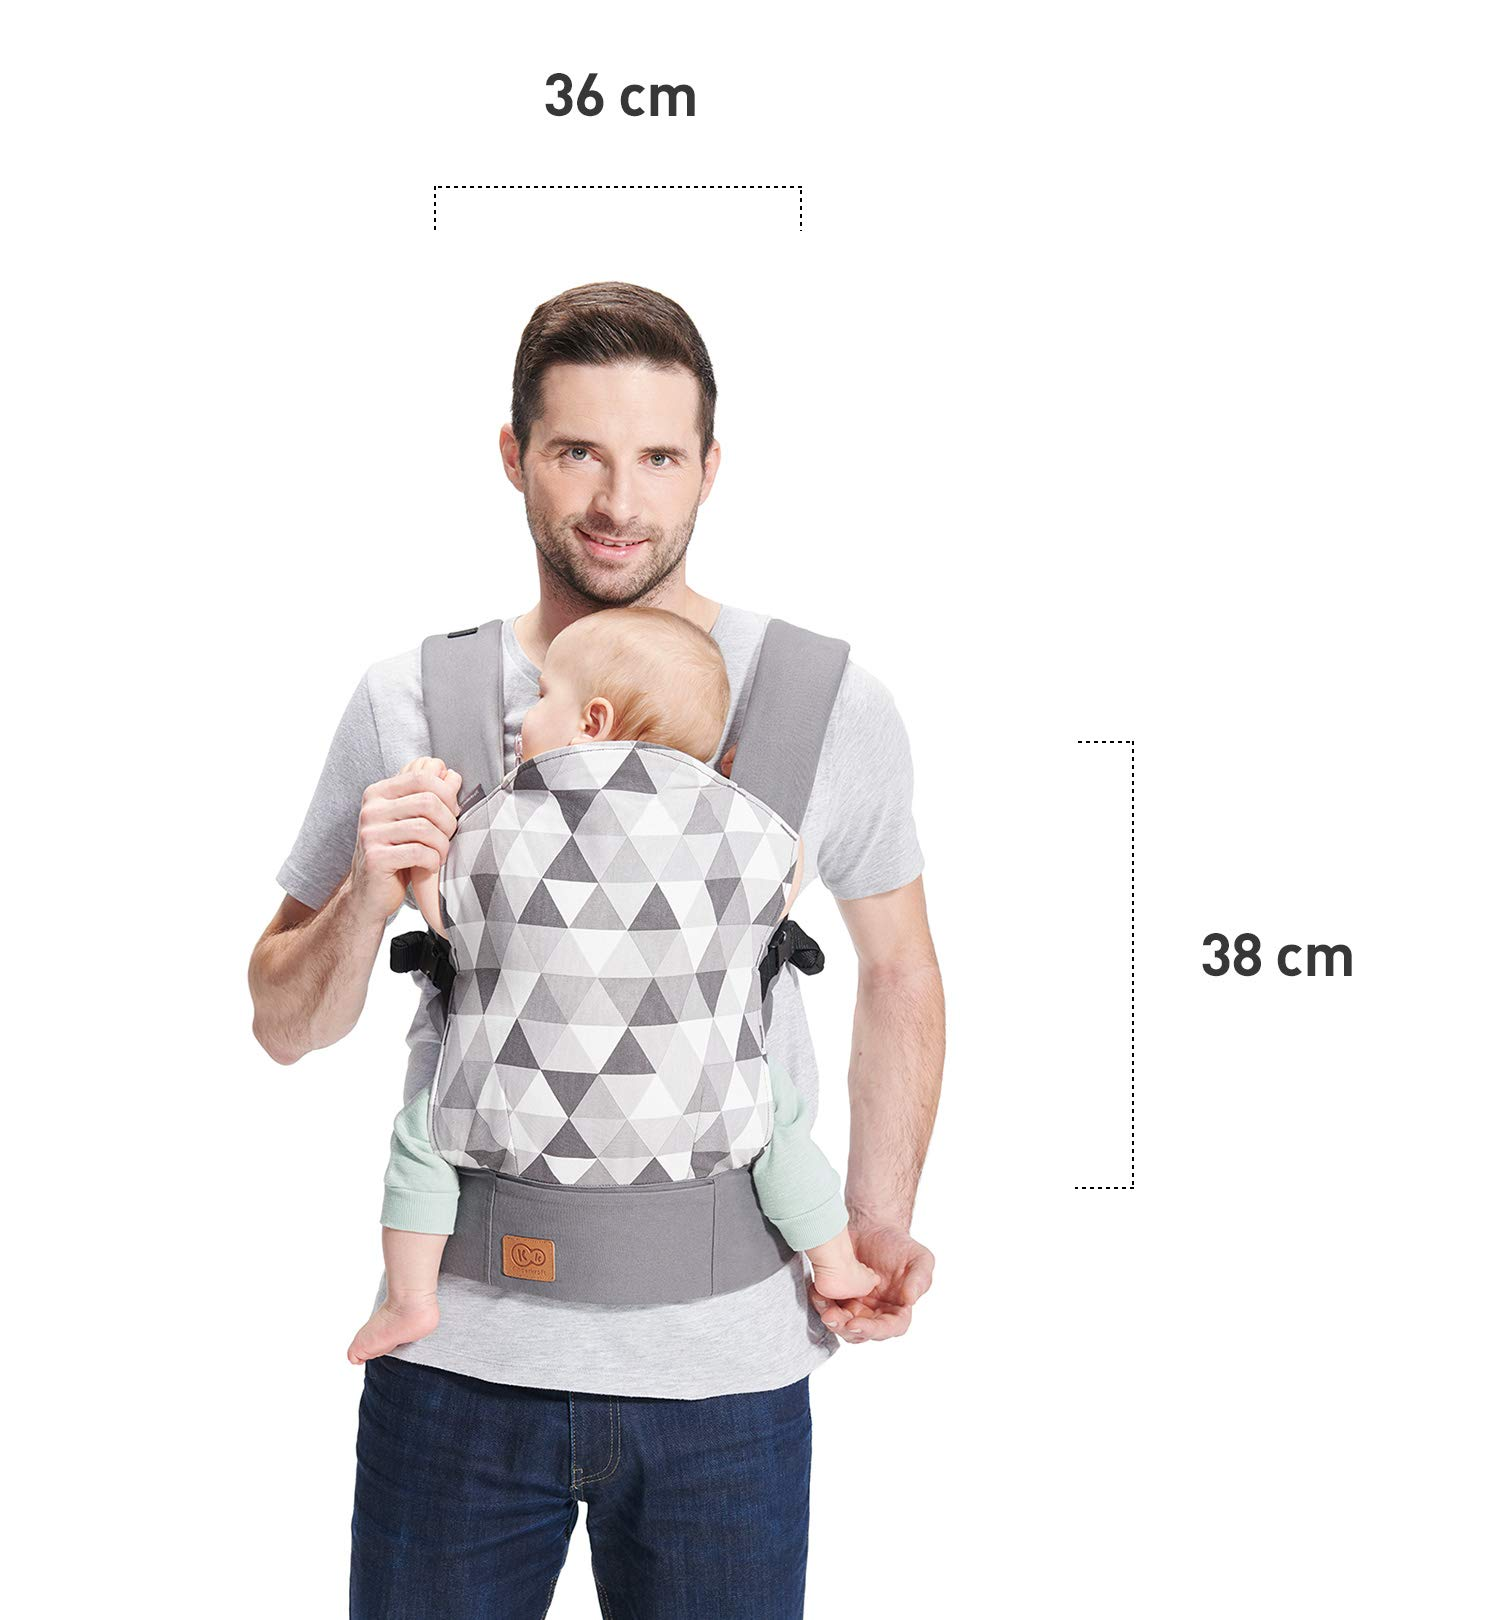 kk Kinderkraft Nino Ergonomic Baby Carrier Front Gray kk KinderKraft Thanks to a special, well-profiled layer, the baby's head does not tilt Ergonomic baby carrier for children aged from 3 months up to 20 kg The compact baby carrier can be folded to a small size and weighs only 0.39 kg 4